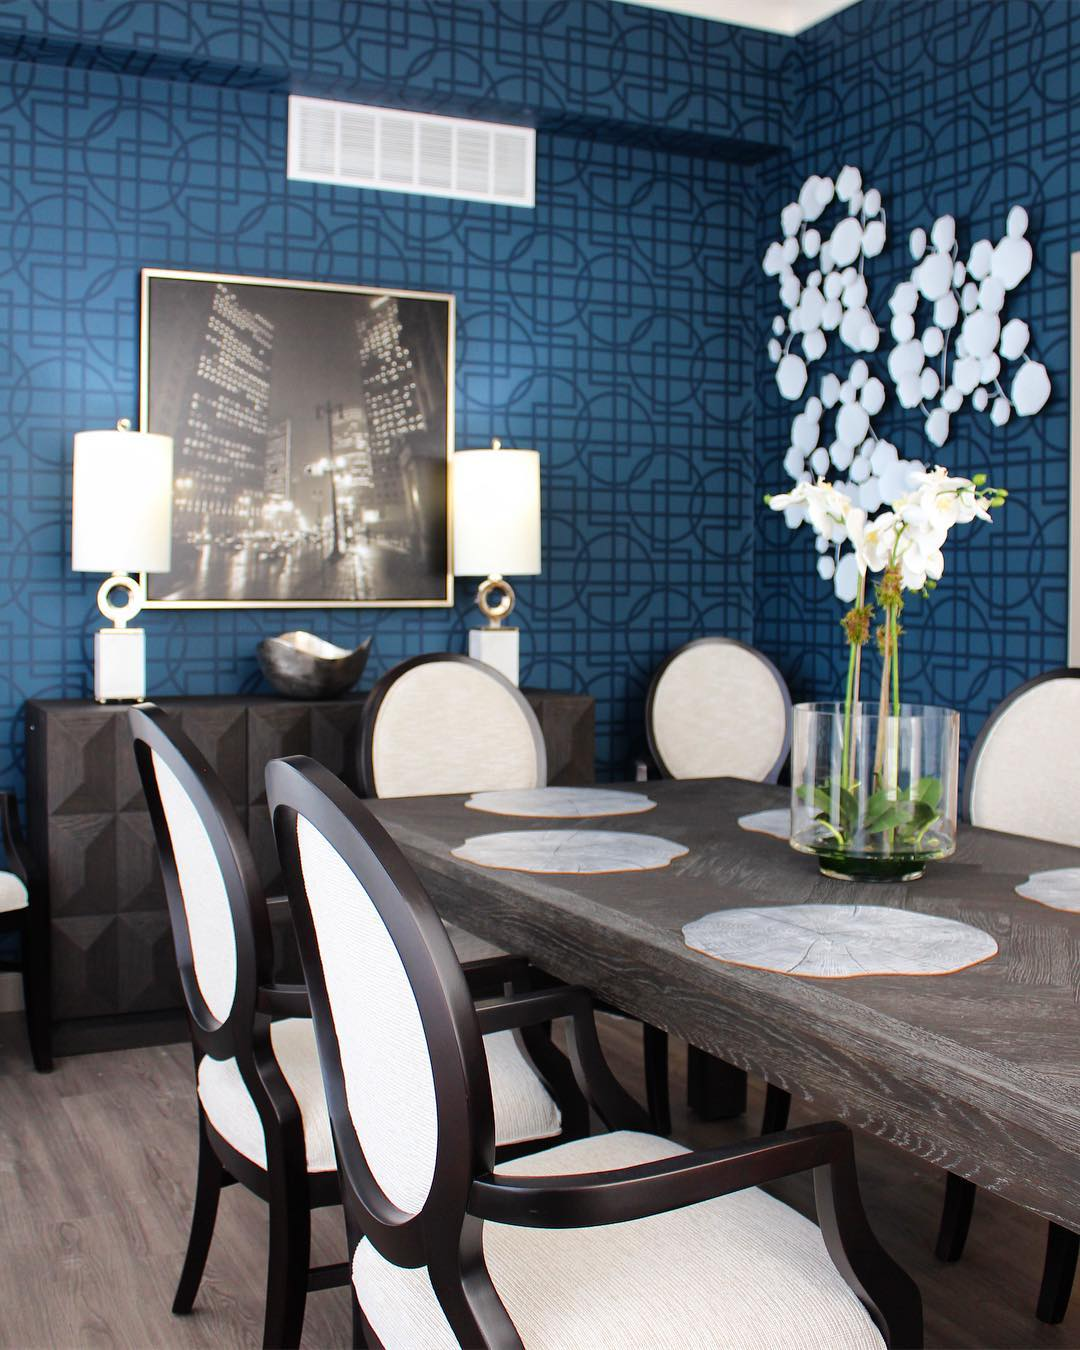 Senior Living Dining Room Design Tips: Assisted and